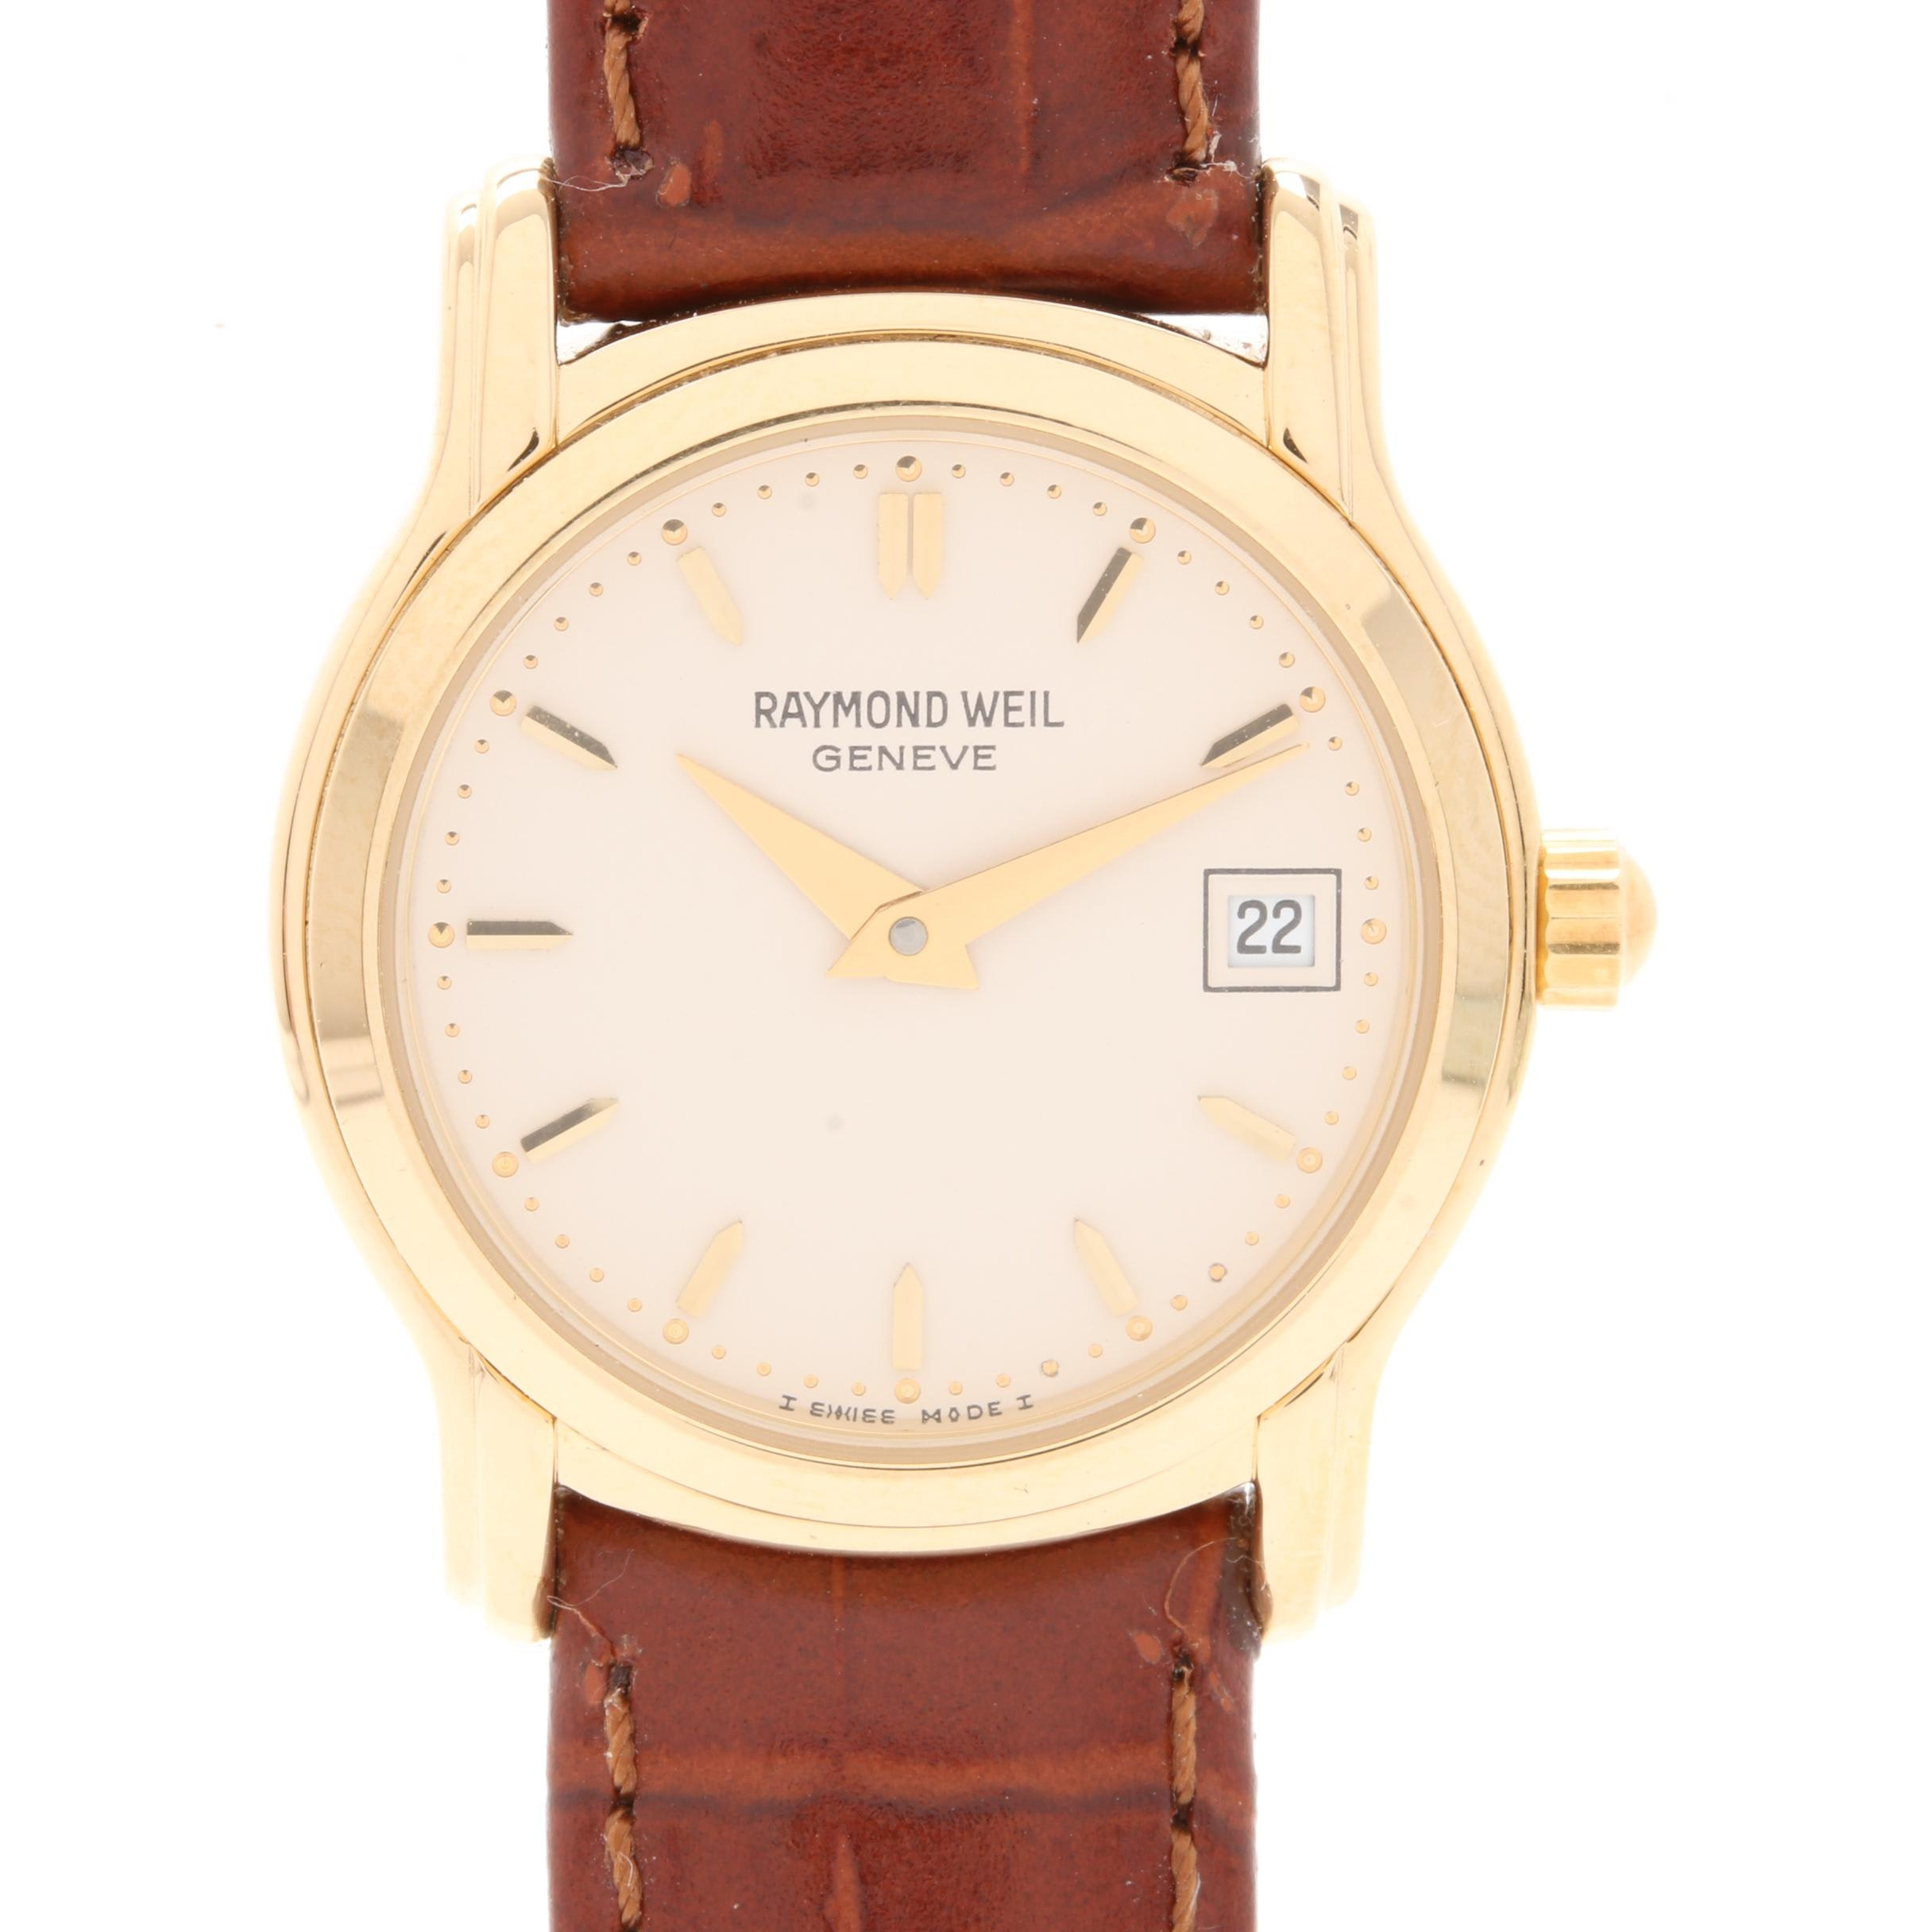 Raymond Weil 5369 Gold Tone Leather Wristwatch